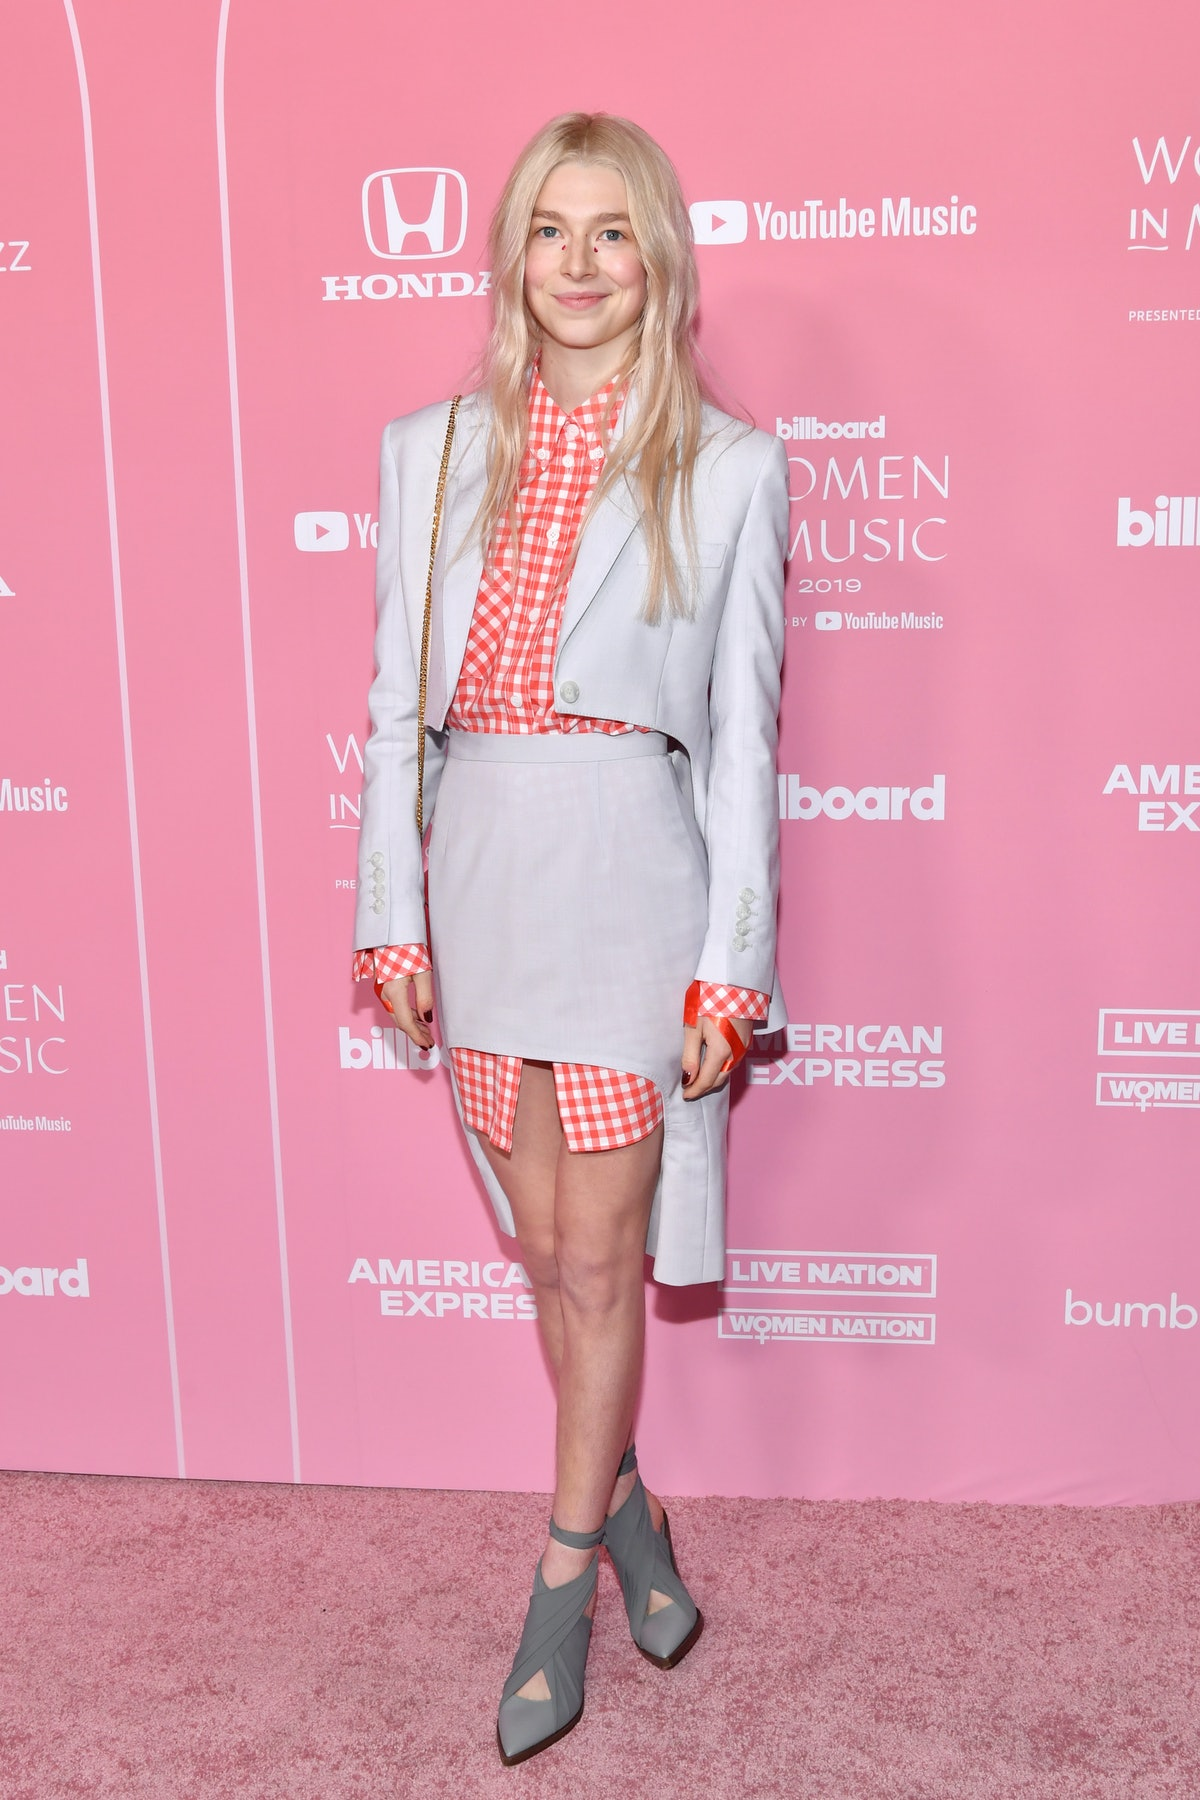 LOS ANGELES, CALIFORNIA - DECEMBER 12: Hunter Schafer attends Billboard Women In Music 2019, presented by YouTube Music, on December 12, 2019 in Los Angeles, California. (Photo by Emma McIntyre/Getty Images for Billboard)